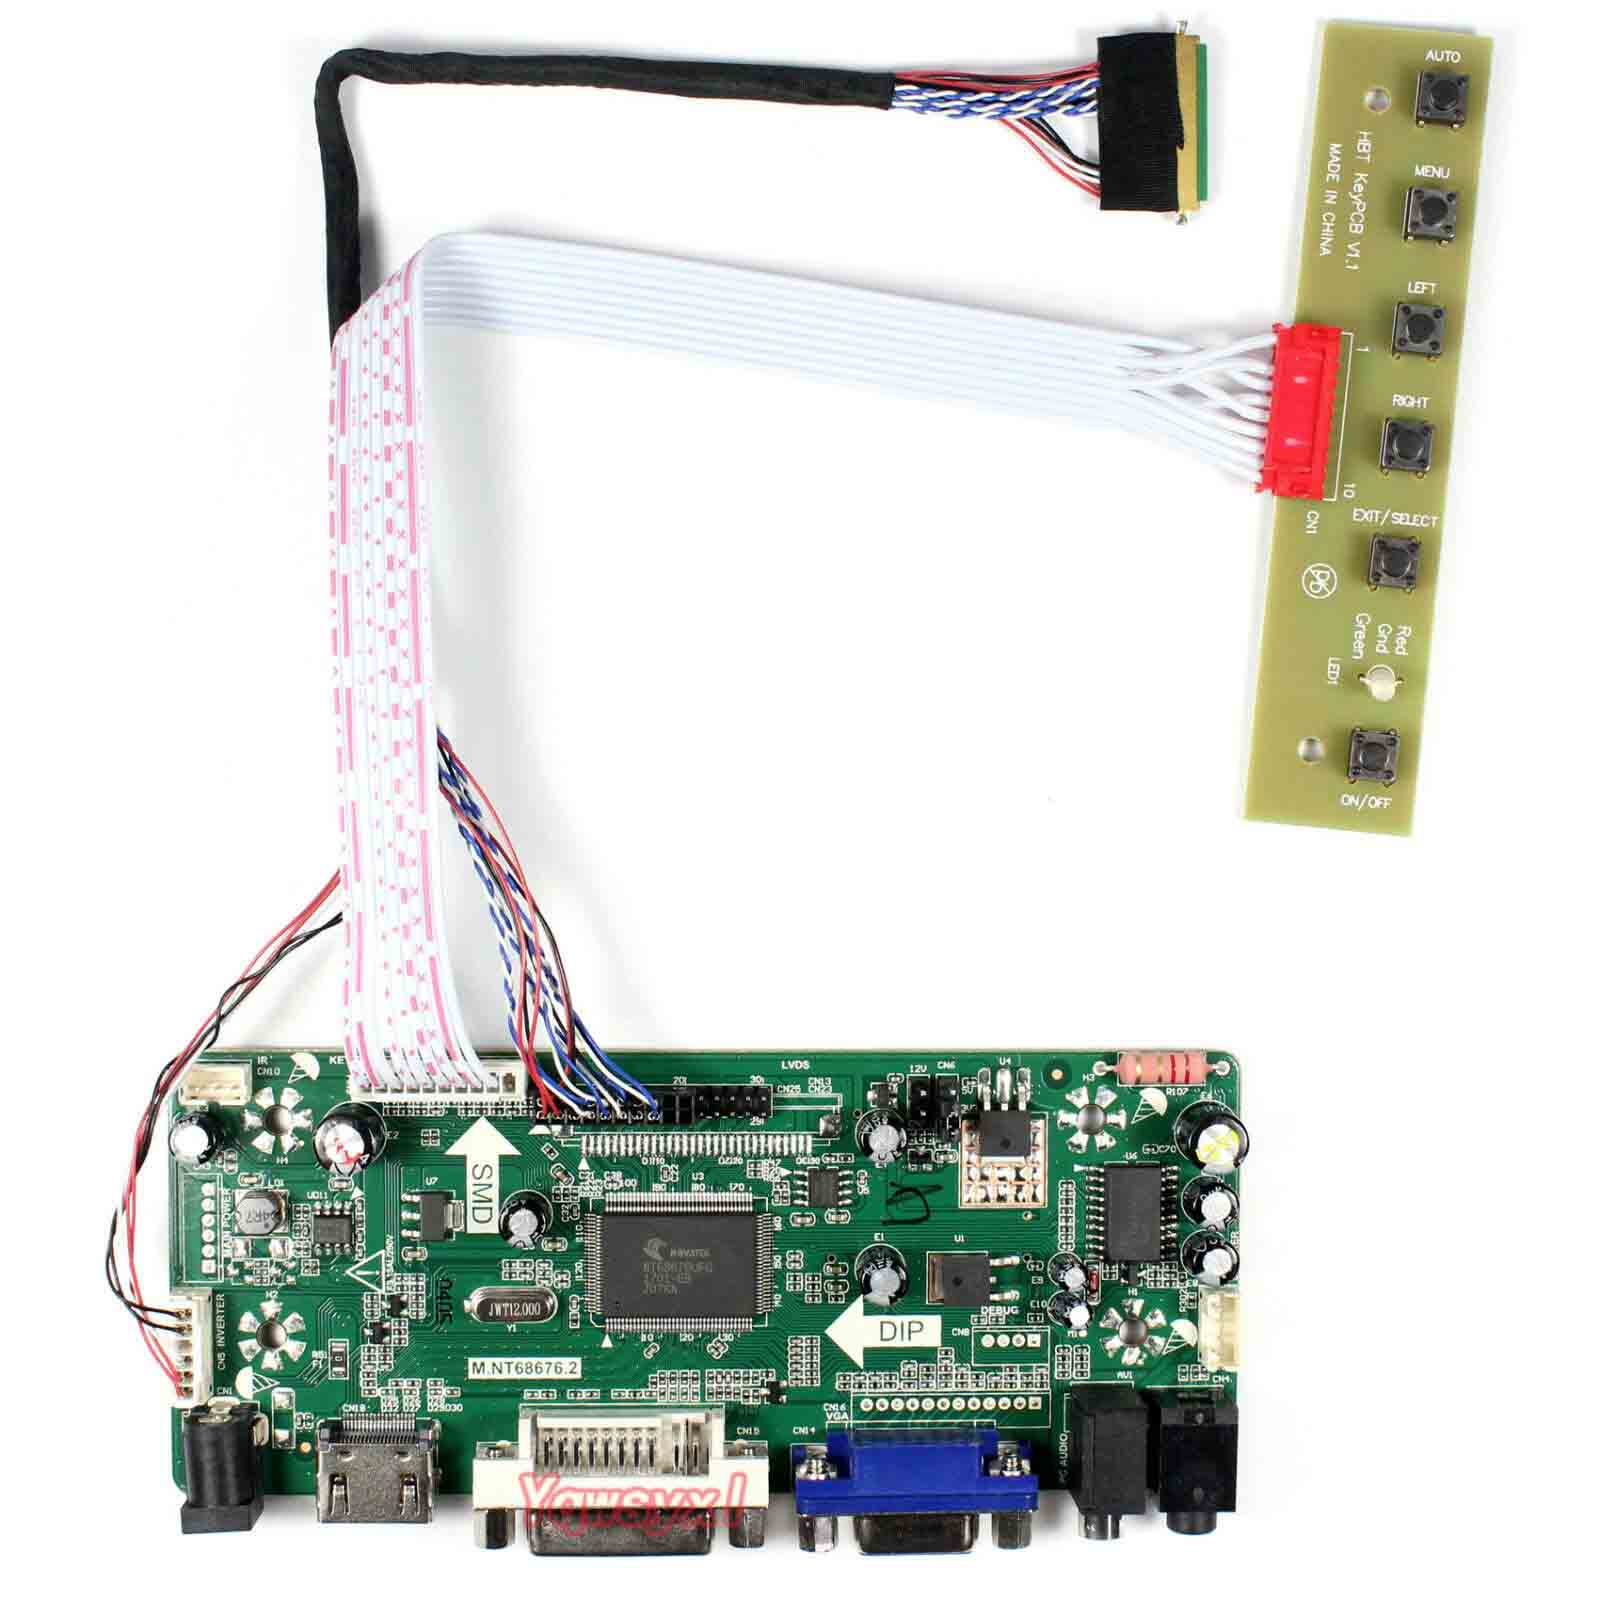 Yqwsyxl Control Board Monitor Kit For B140XW03 V0 V.0  HDMI + DVI + VGA LCD LED Screen Controller Board Driver